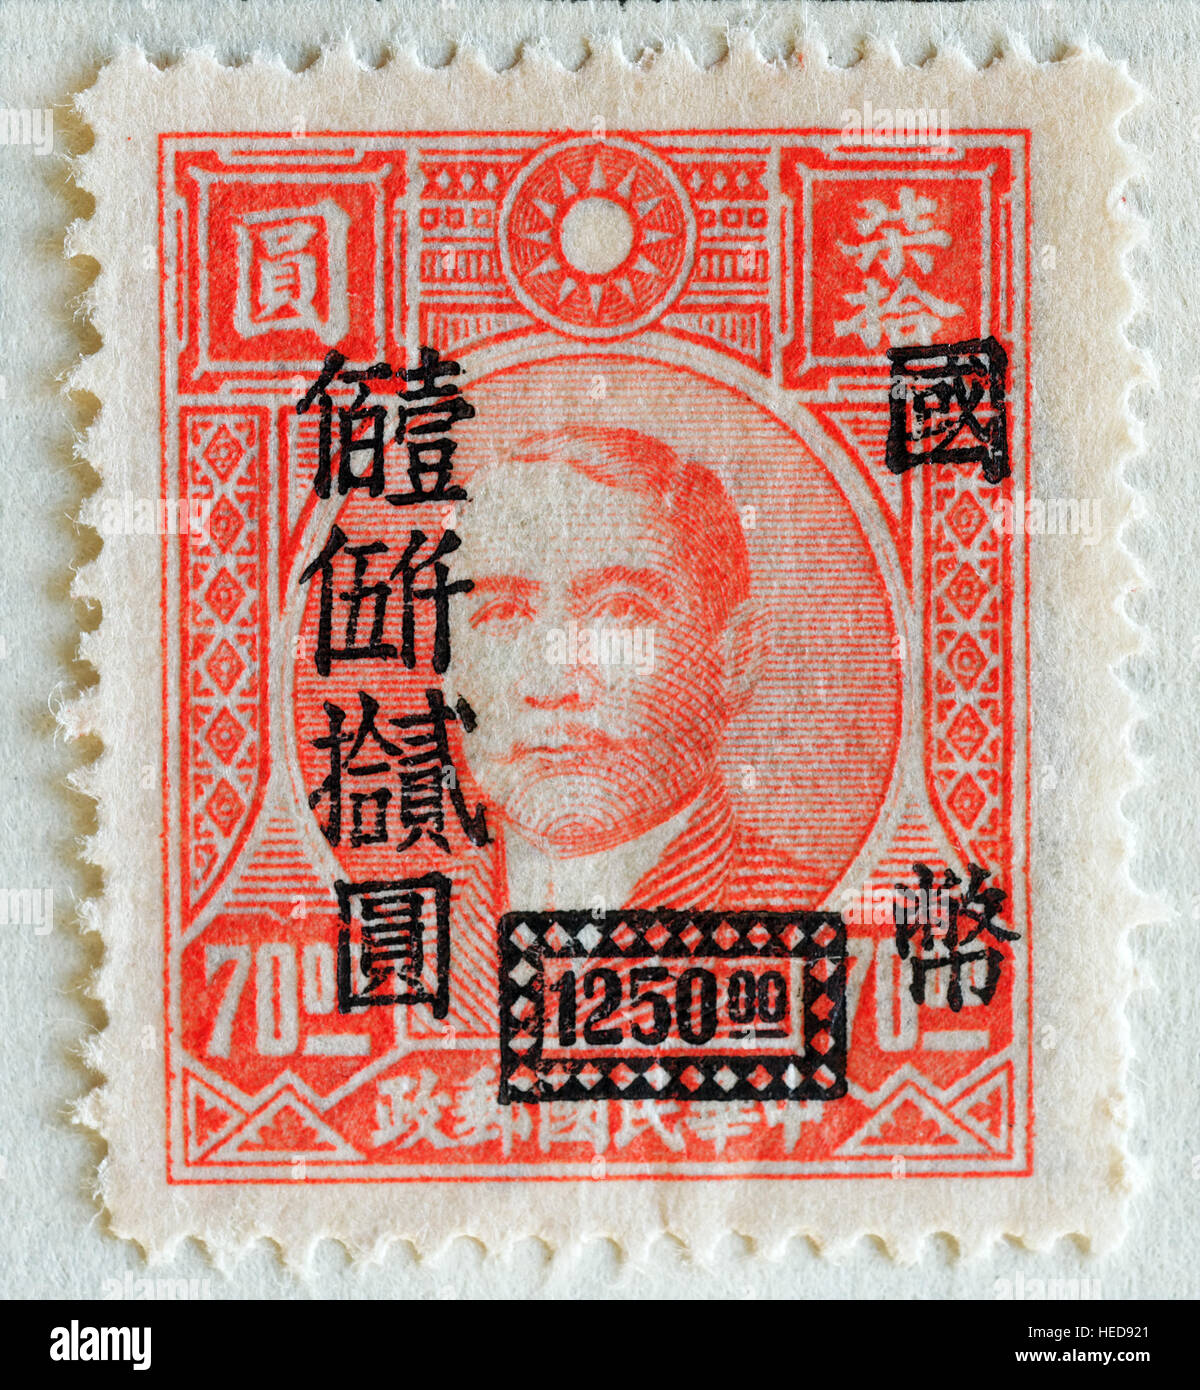 A Chinese Sun Yat Sen stamp overprinted $1250 on $70 from 1947 - Stock Image